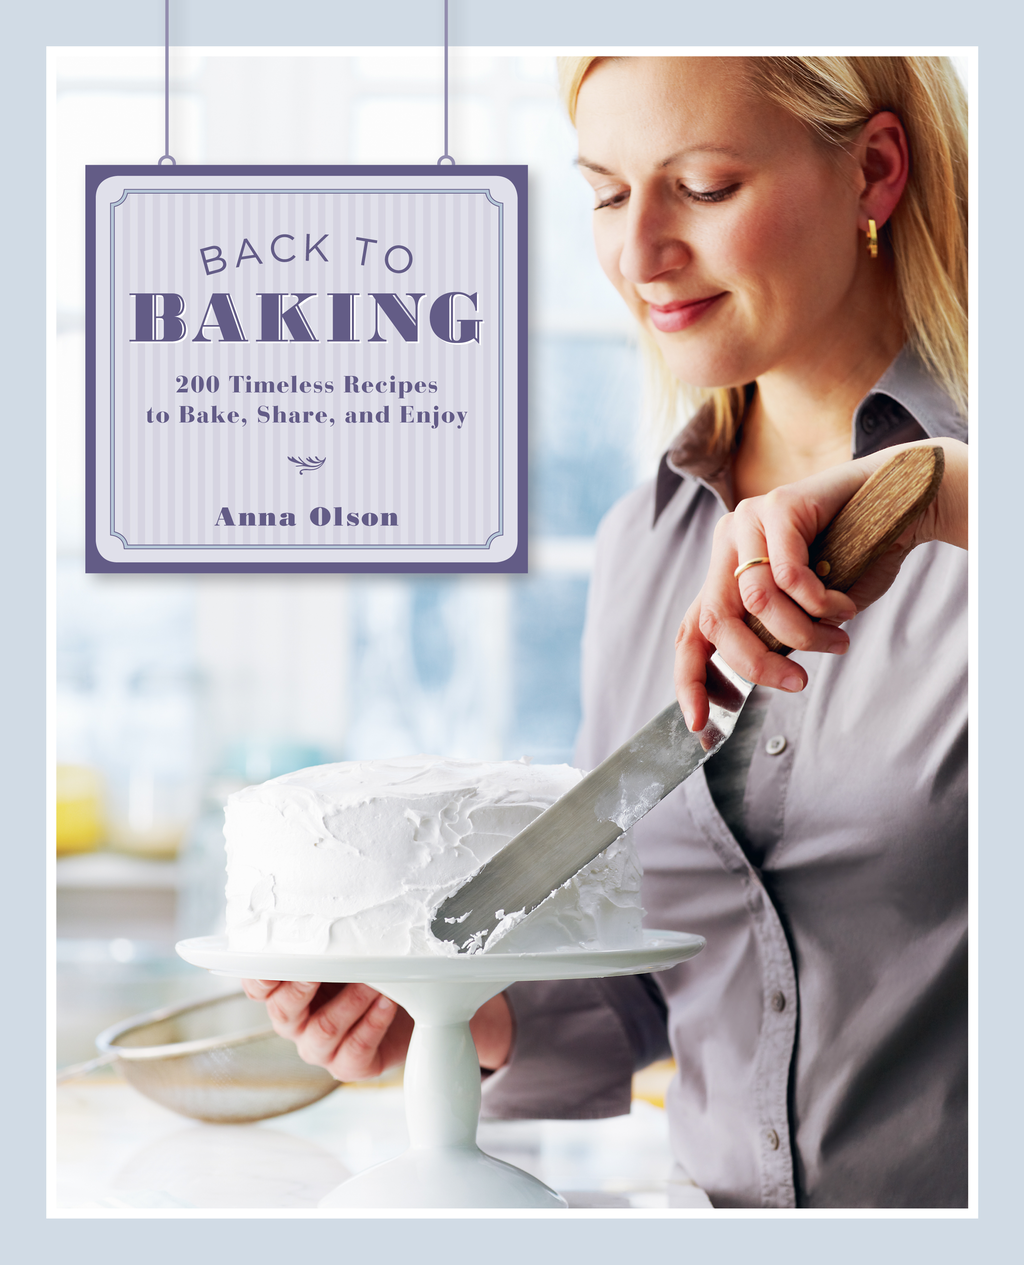 Back to Baking: 200 Timeless Recipes to Bake, Share, and Enjoy By: Anna Olson